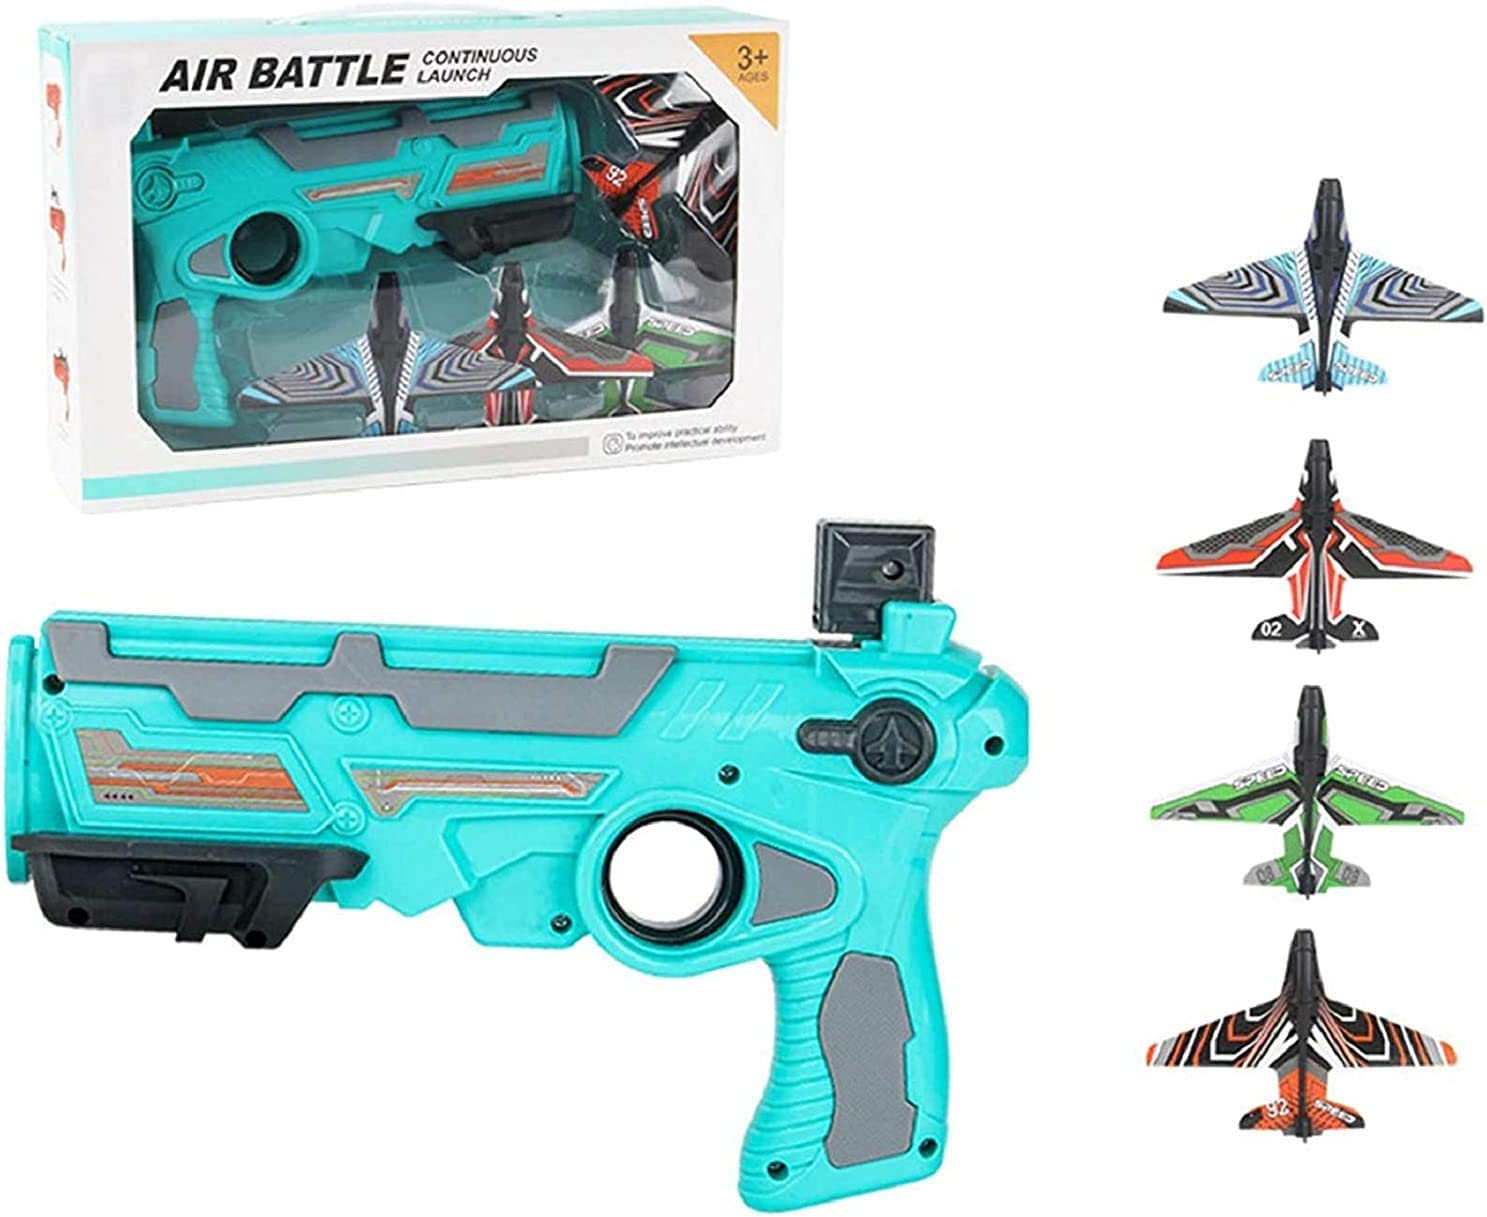 fun gifts for outdoor sports toys 2021 Explosive Toy One-click Pop-up Foam Plane-Catapult Plane is a game toy suitable for children from 4 to 12 years old equipped with 4 glider launchers blue suit